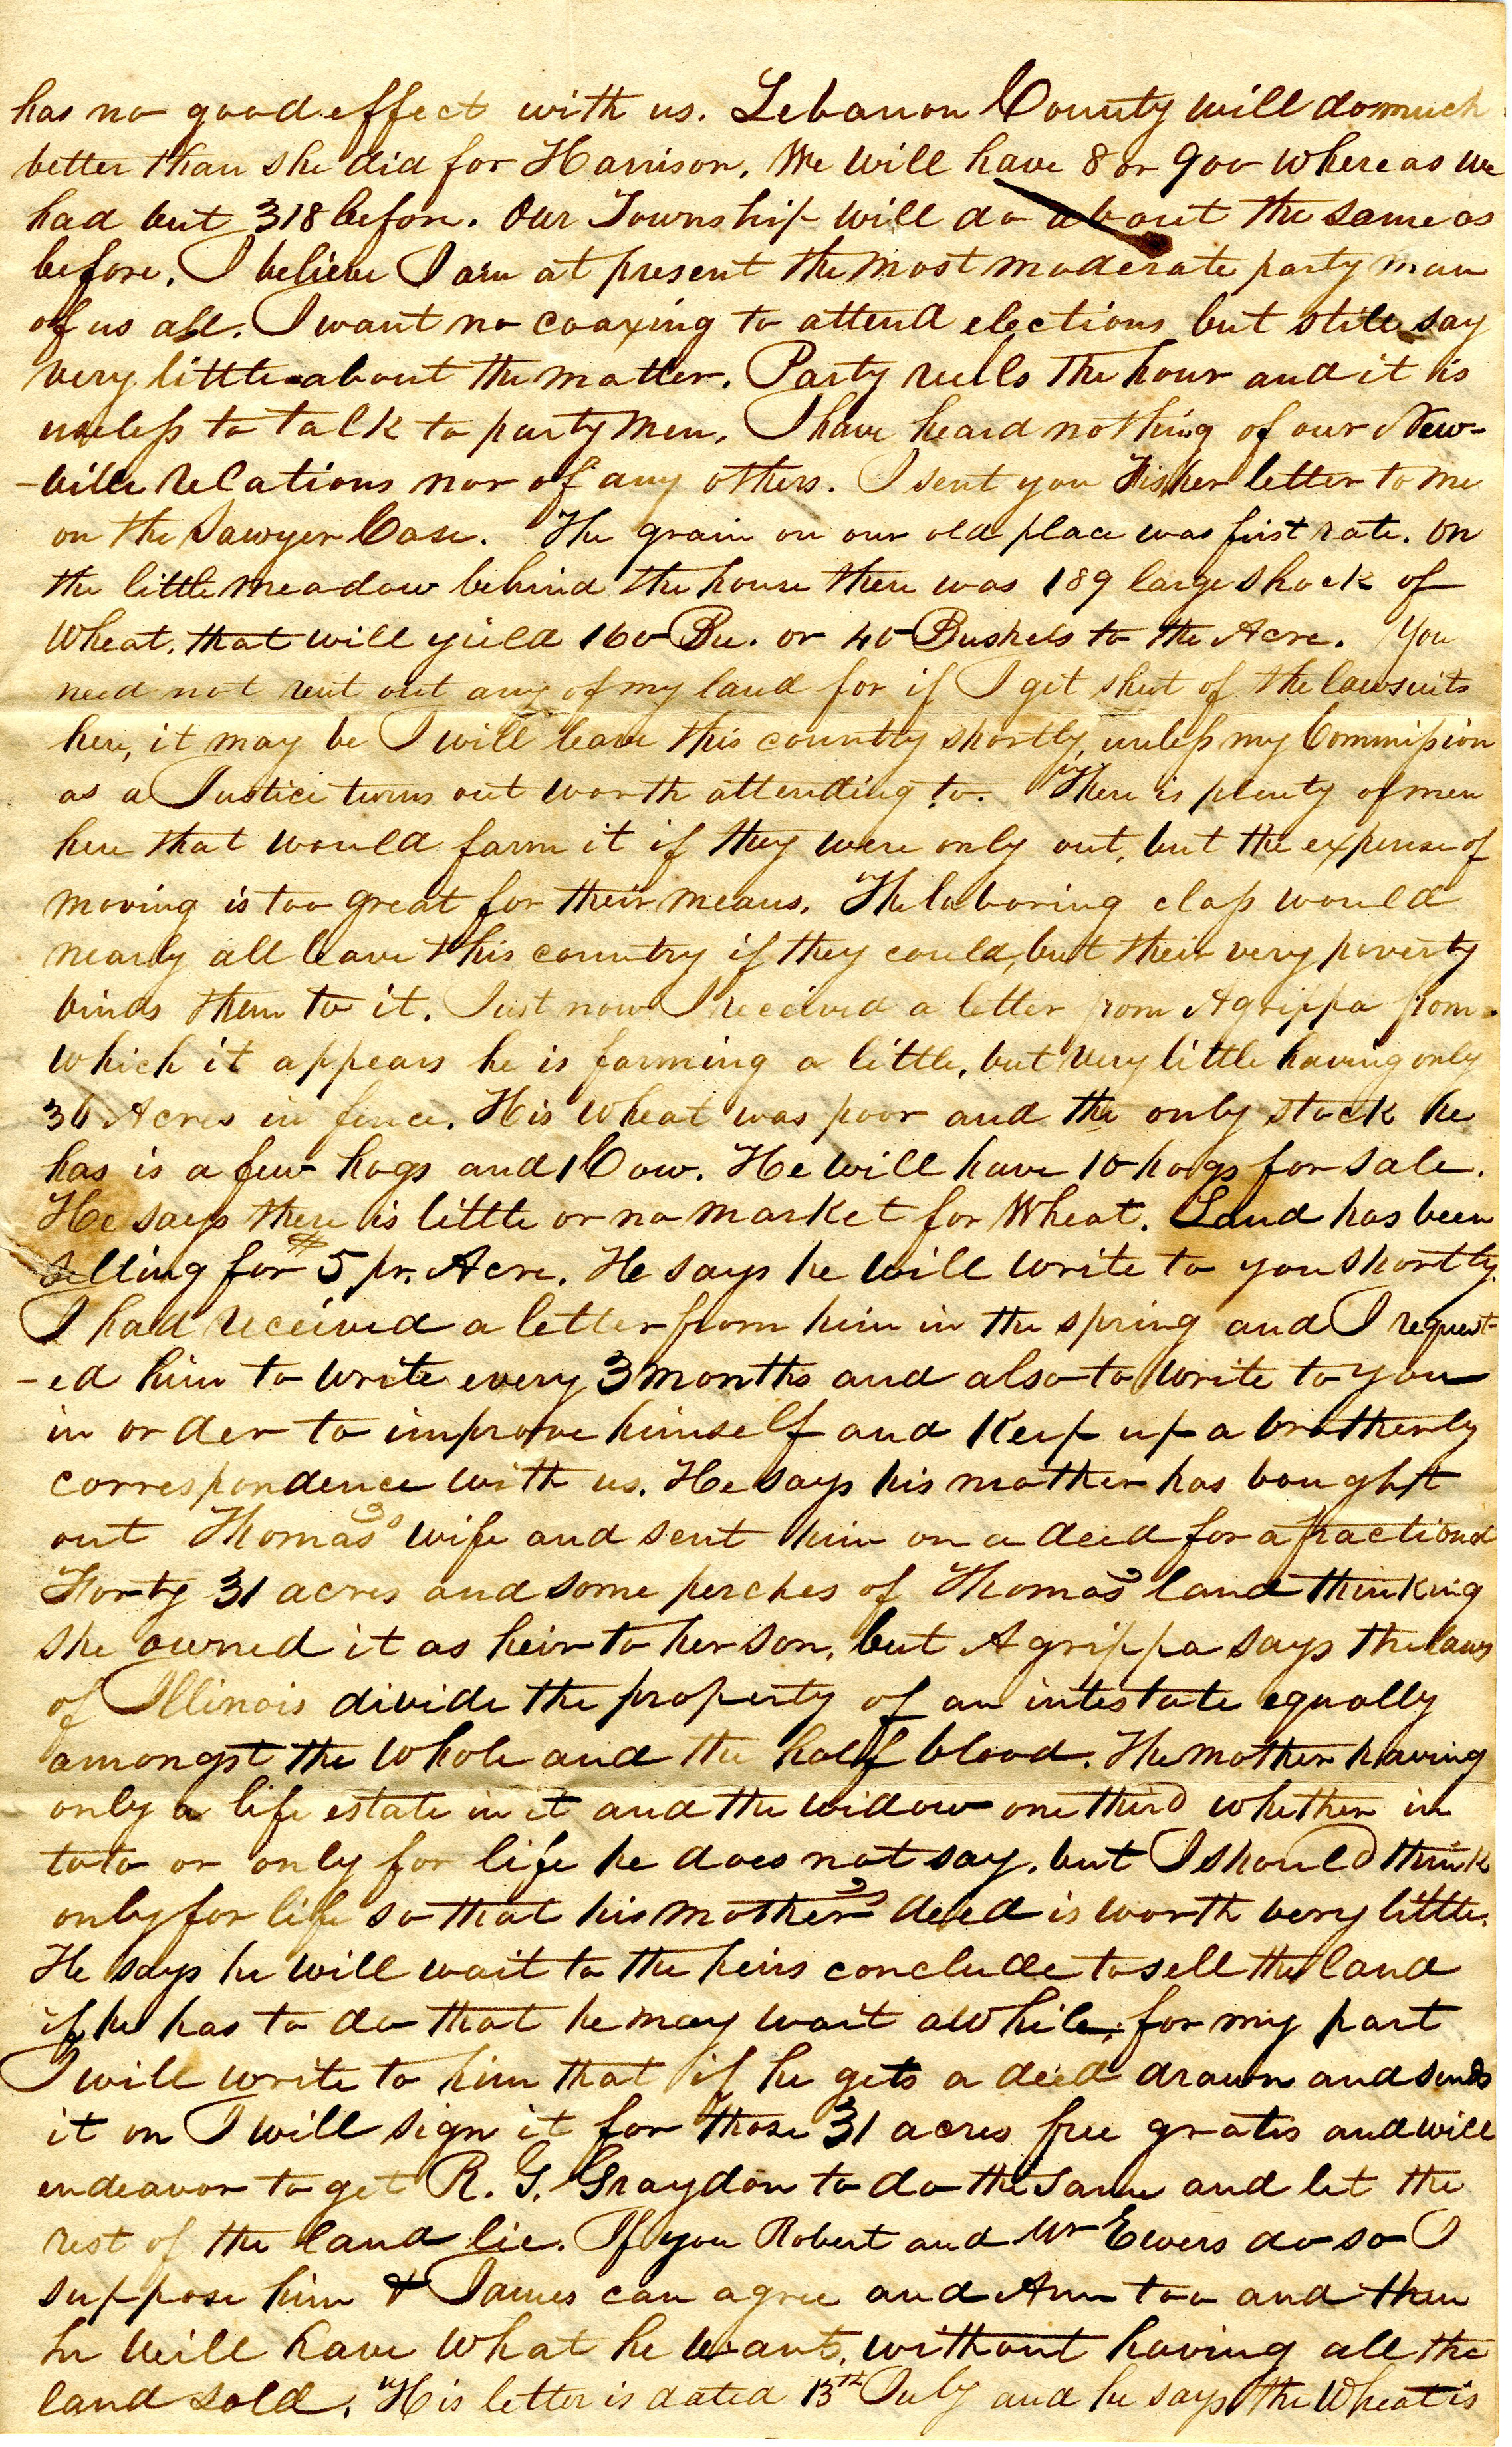 Letter From William Geddes to John Geddes, July 31, 1840 image